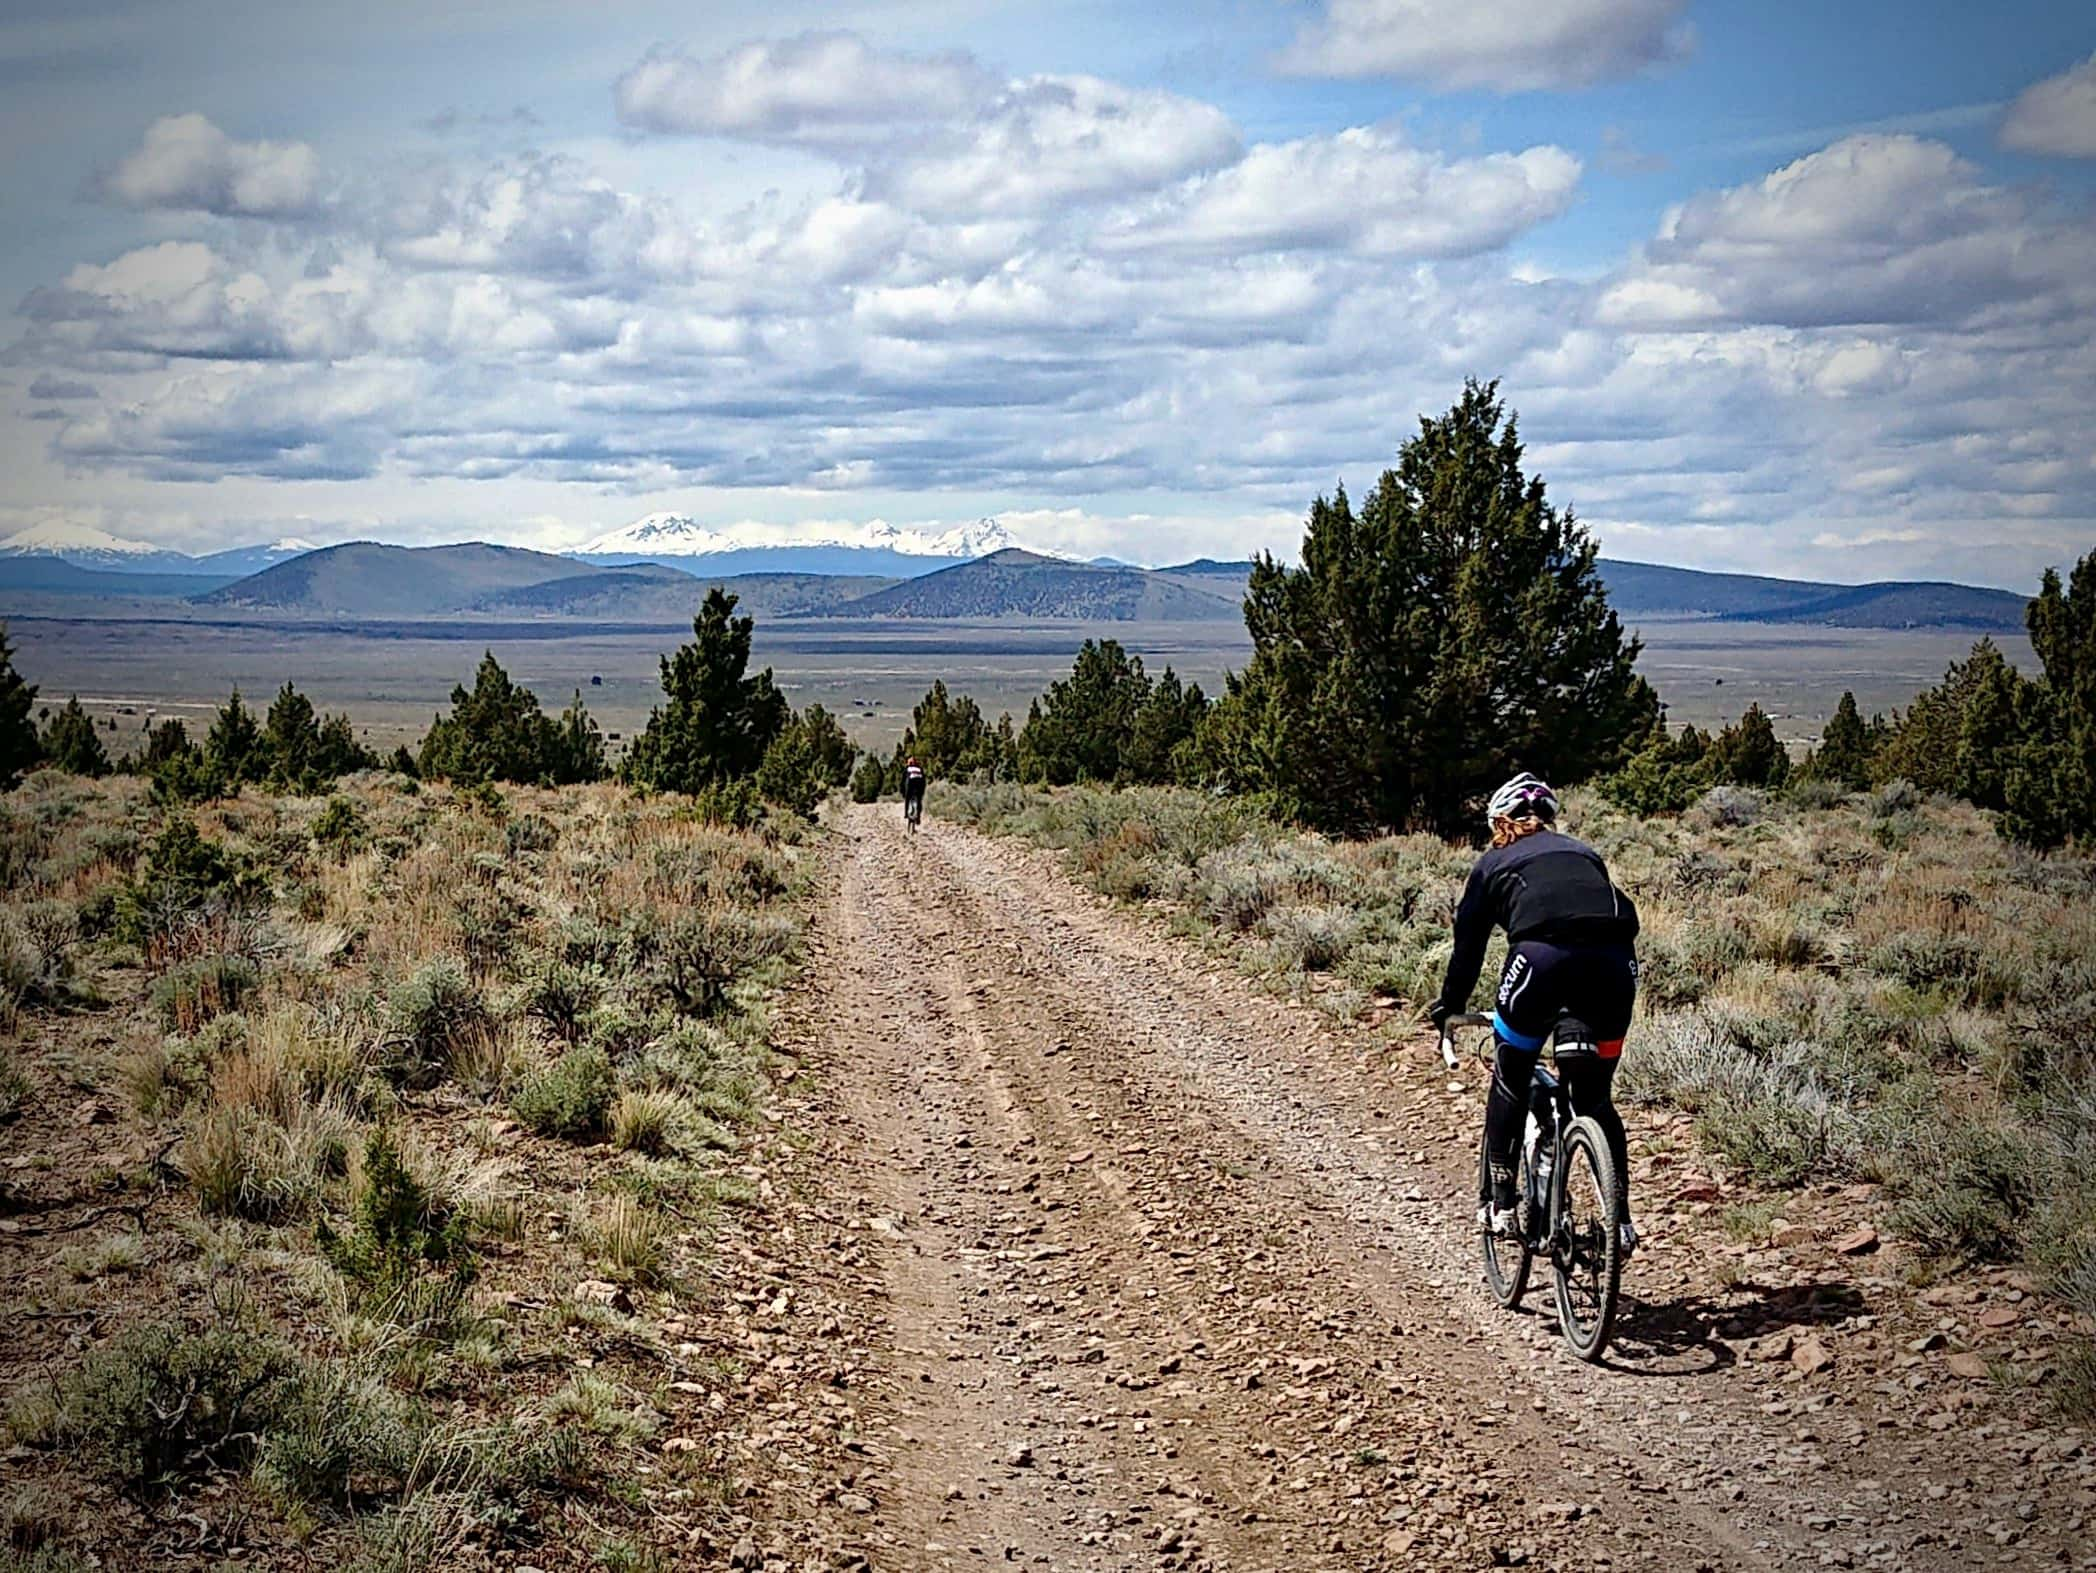 Cyclist on un-named gravel road connecting Pine Mountain road with Ford road in Oregon.